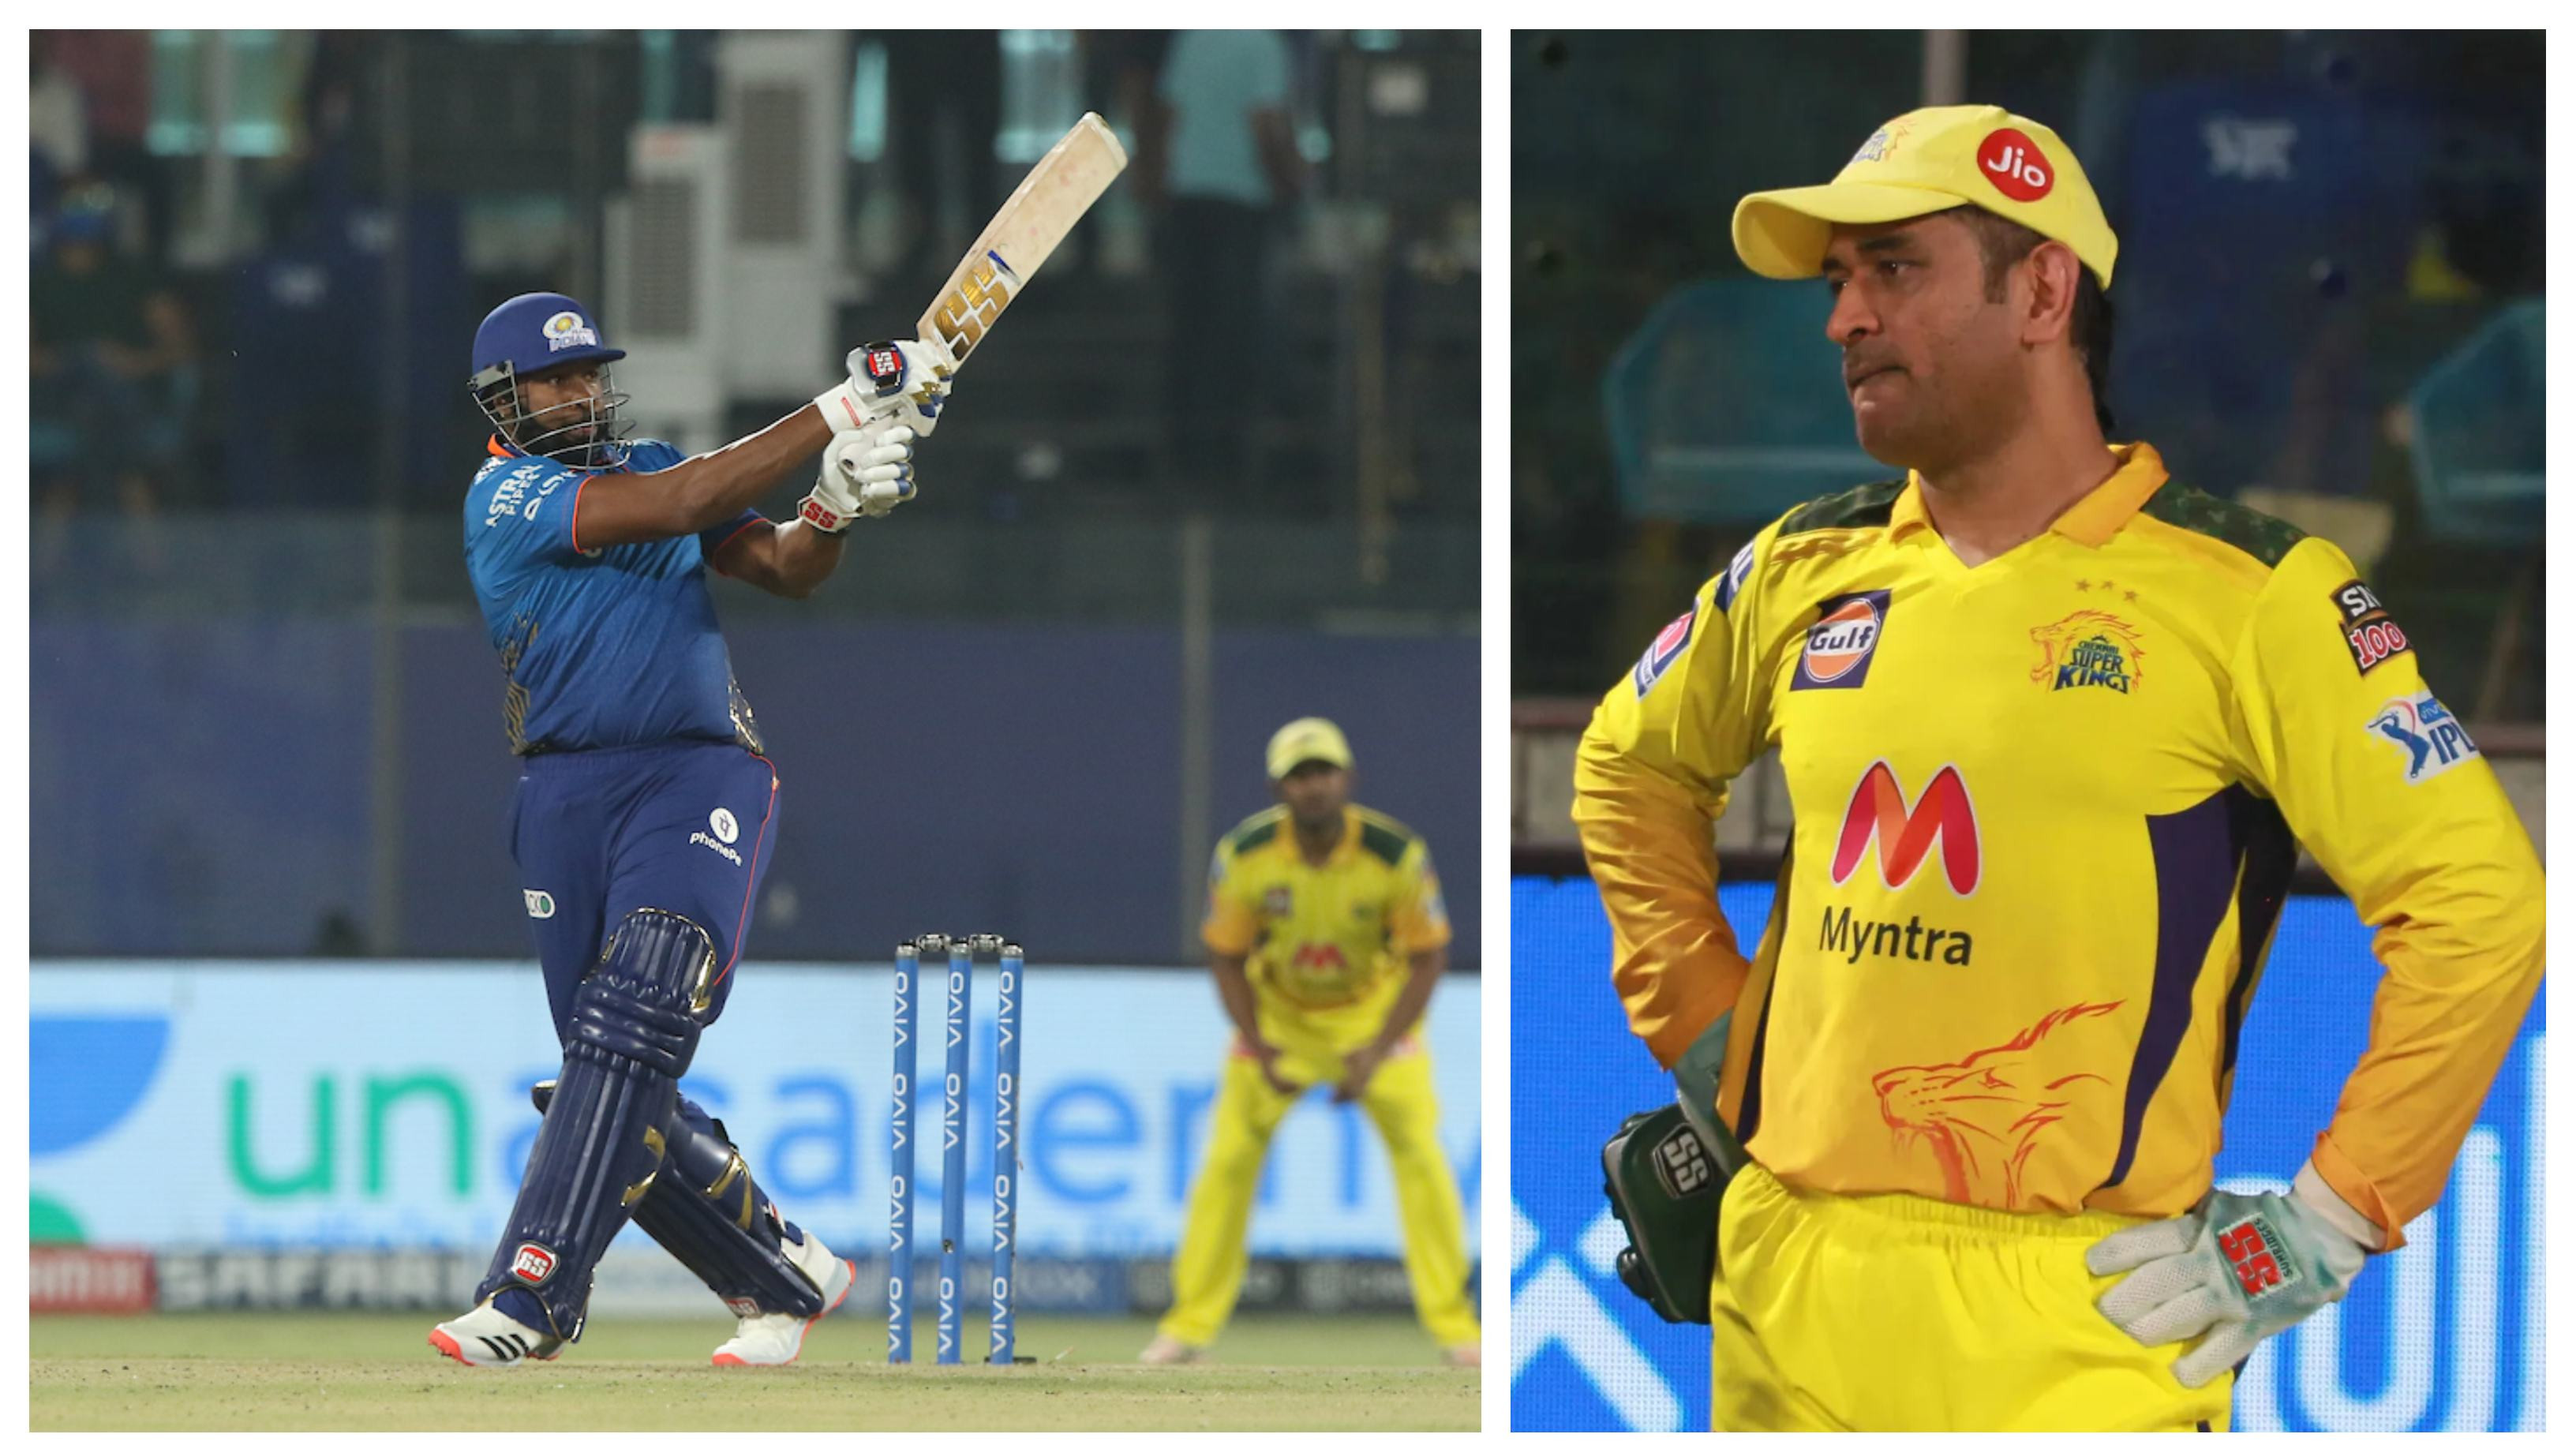 IPL 2021: MS Dhoni rues execution of his bowlers after CSK's narrow defeat to MI